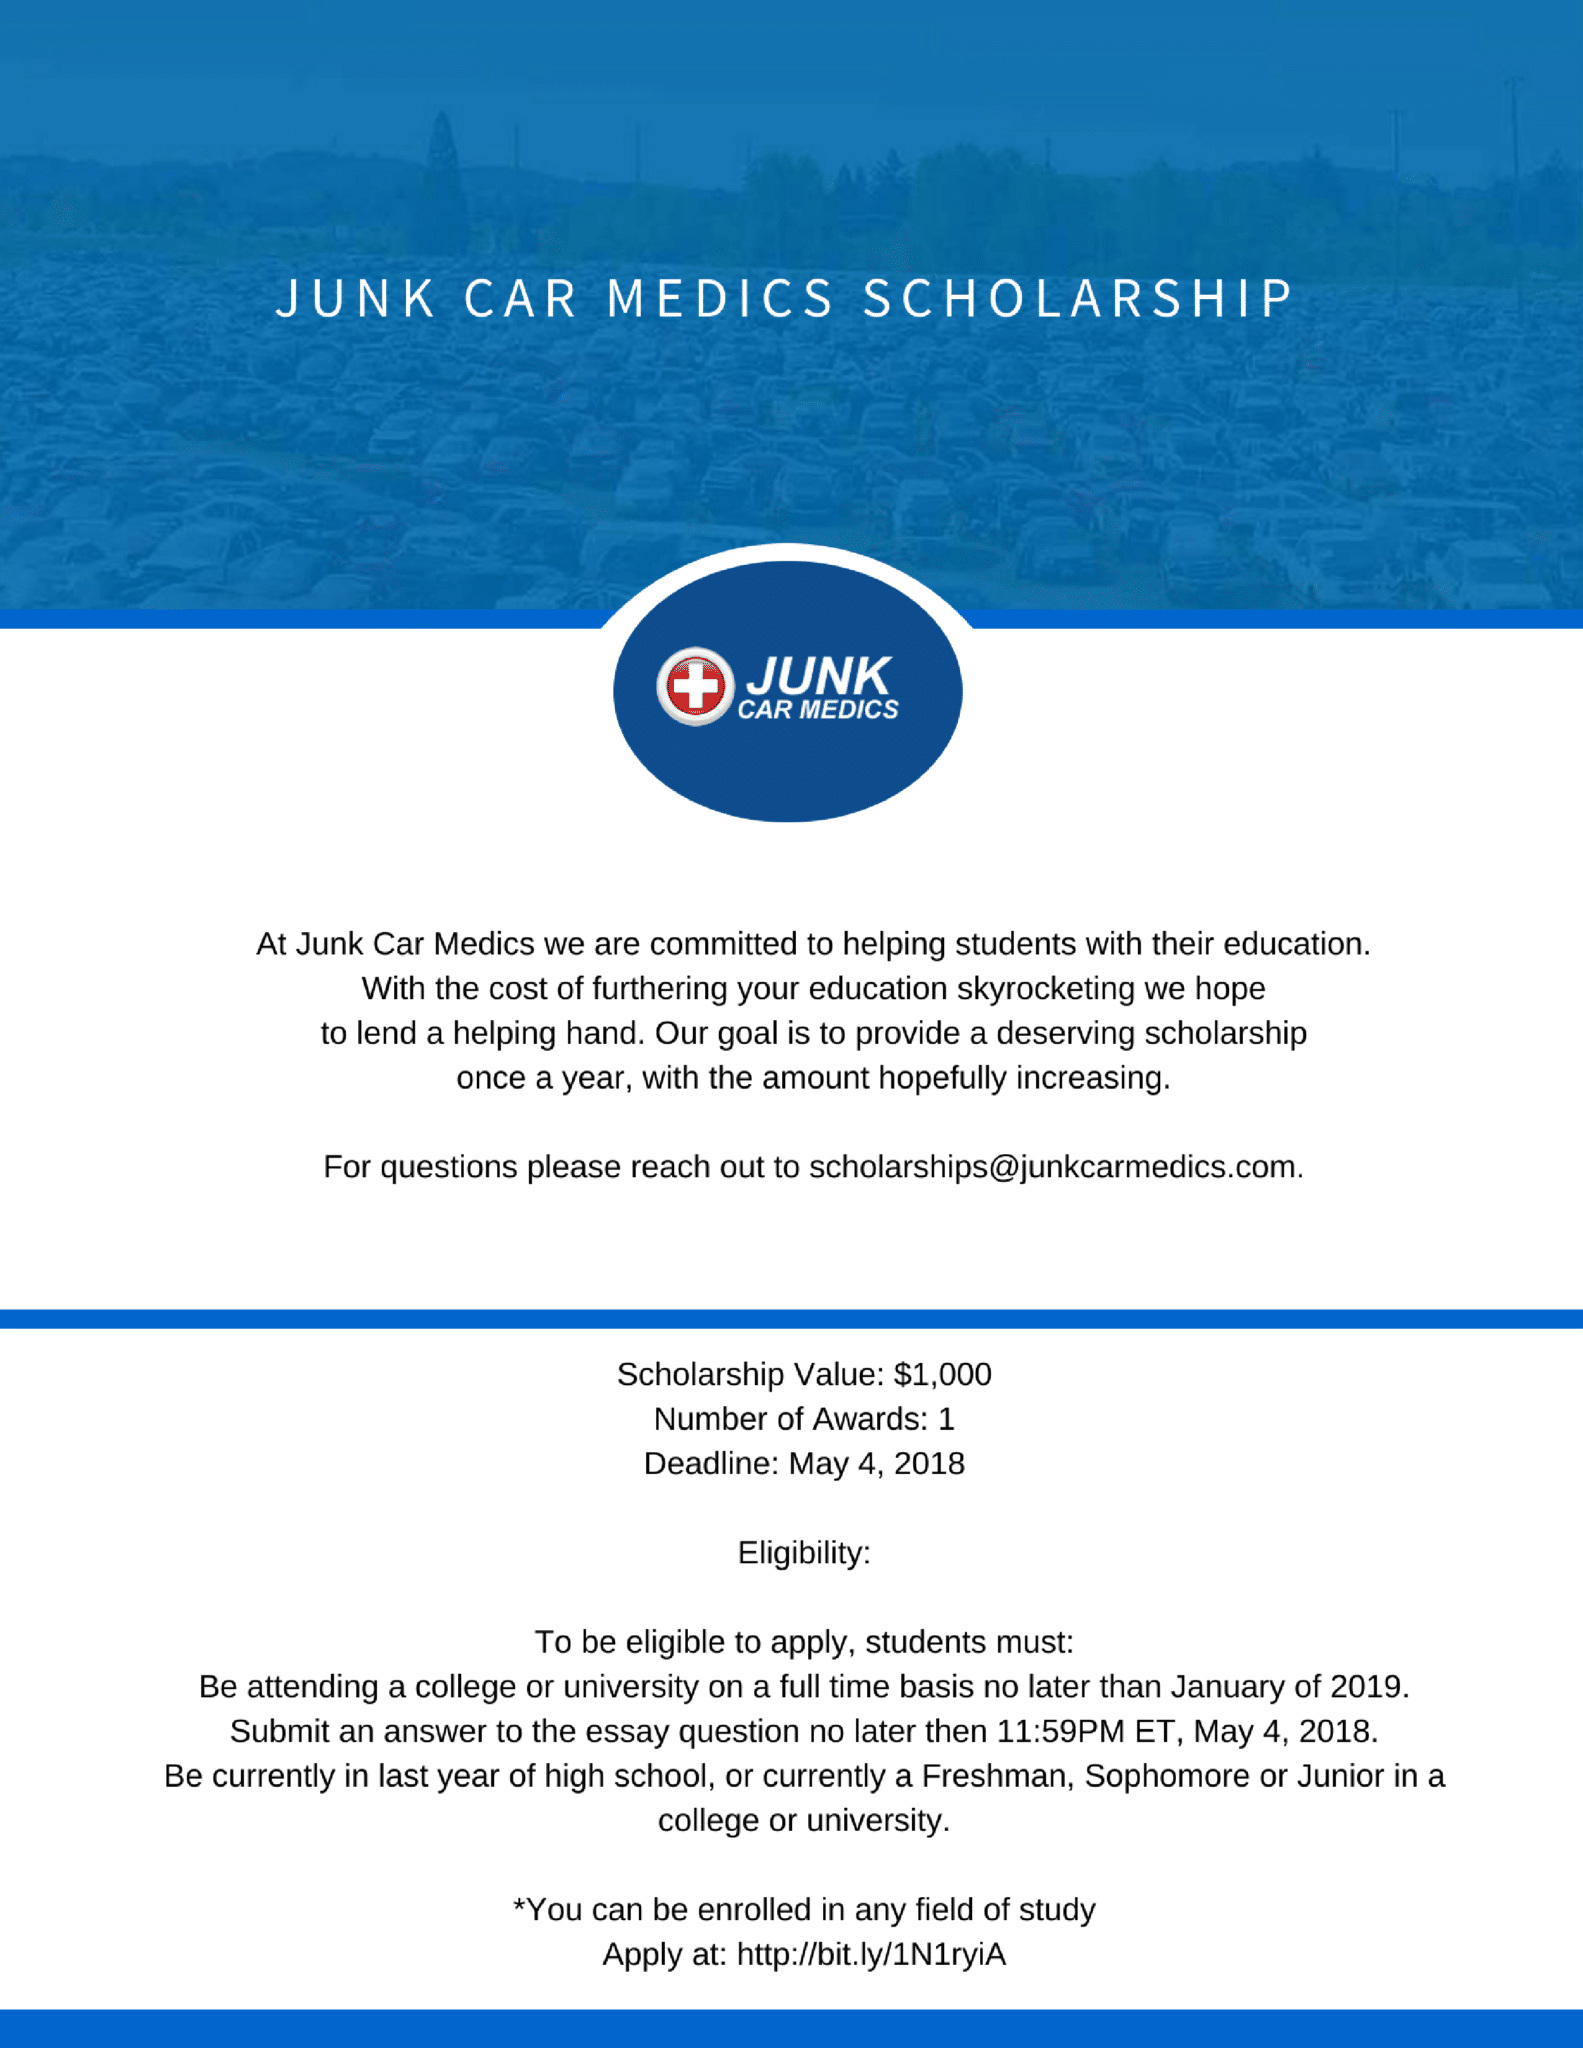 Junk Car Medics Annual Scholarship - 2018